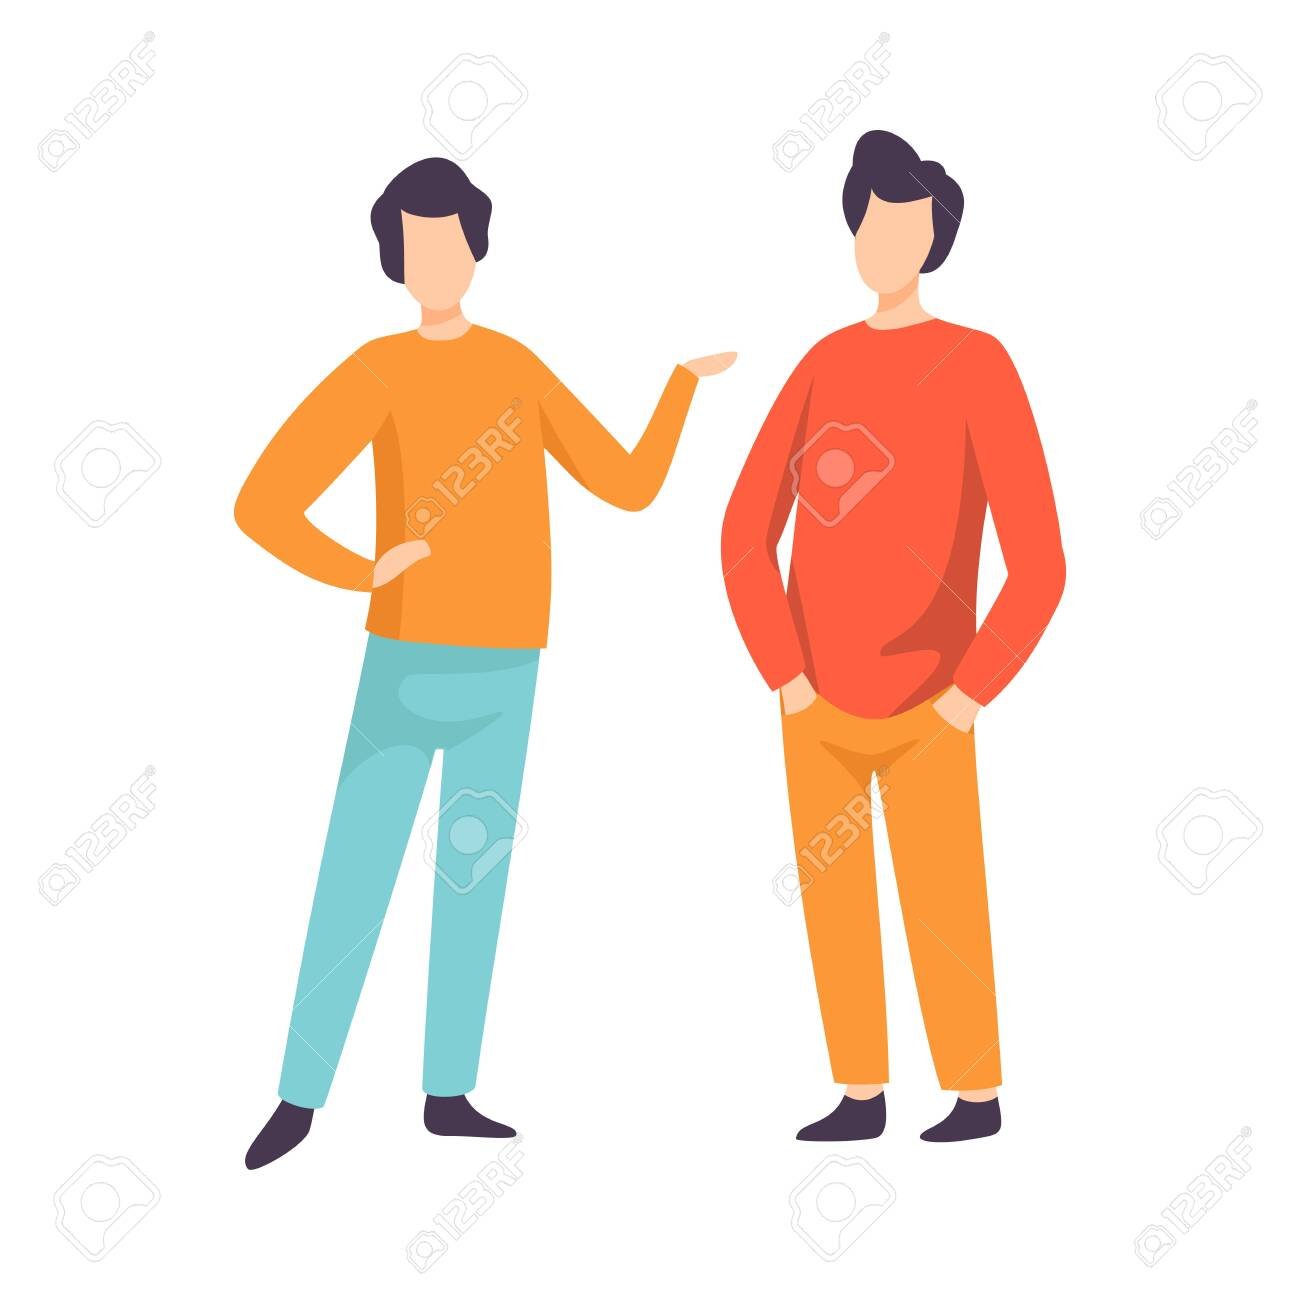 Two Young Men Dressed in Casual Clothing Standing and Talking, People Speaking to Each Other Vector Illustration on White Background. - 128165333